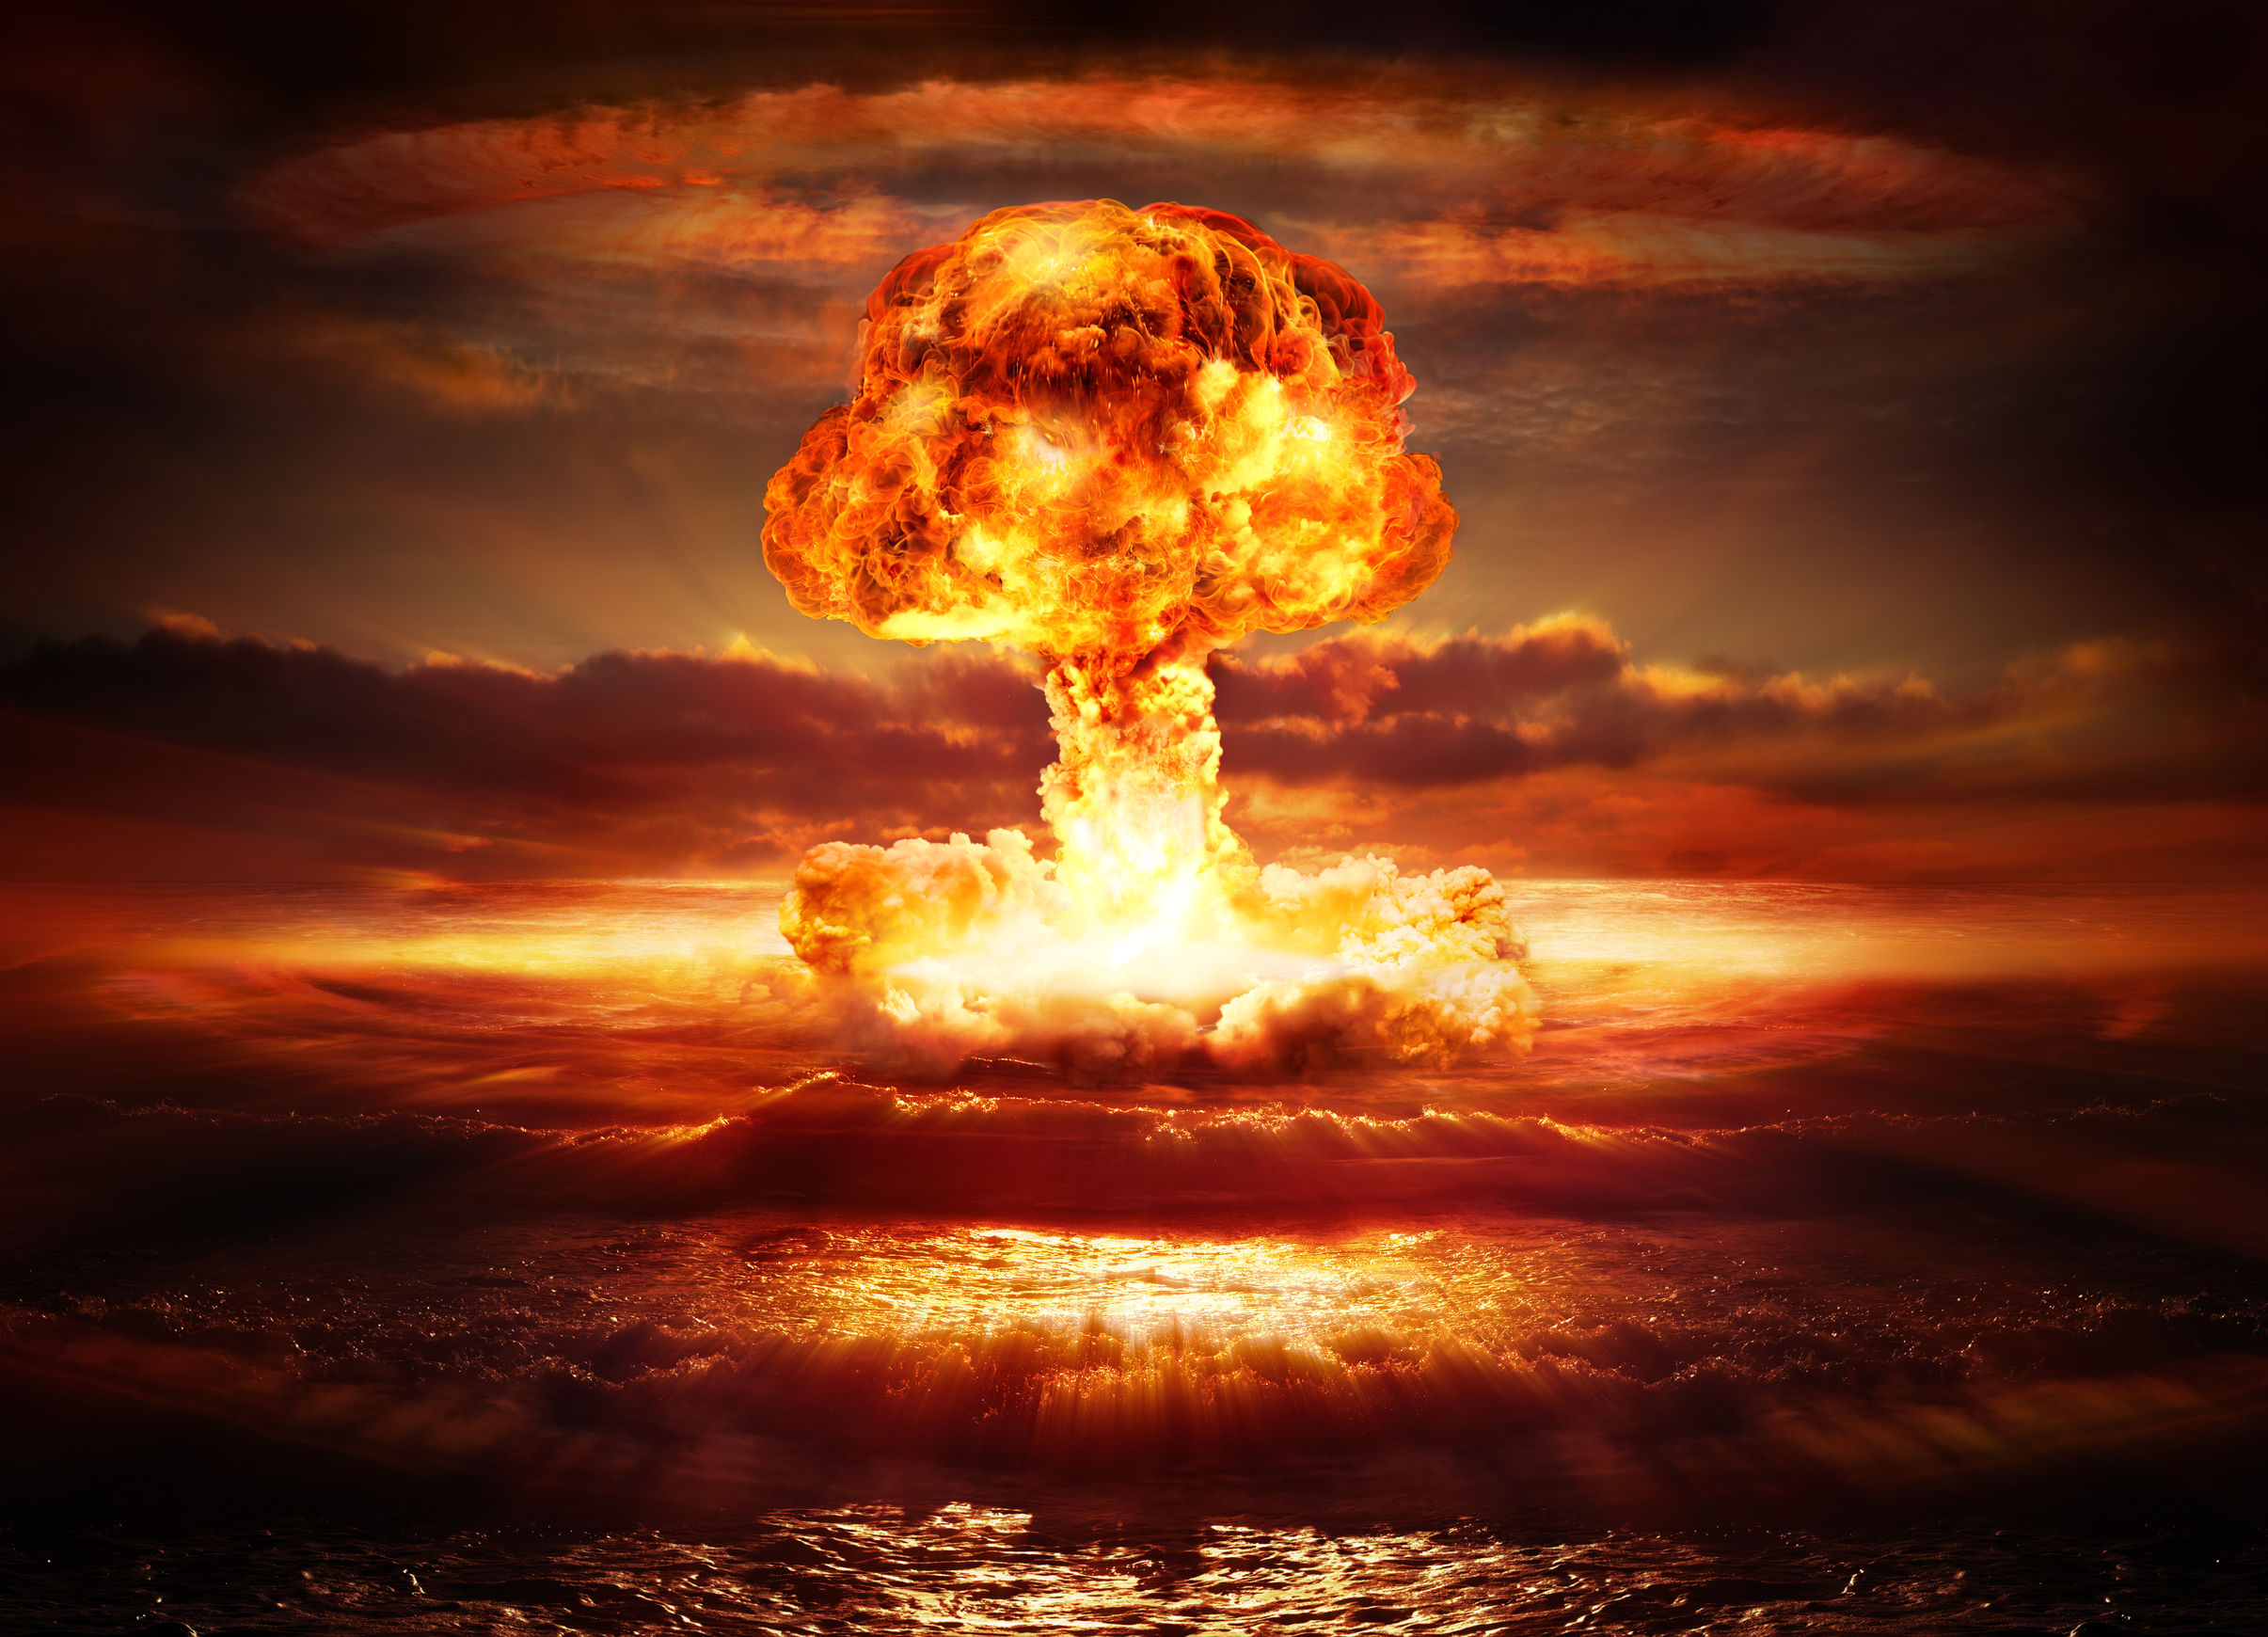 Can nukes really destroy the world?